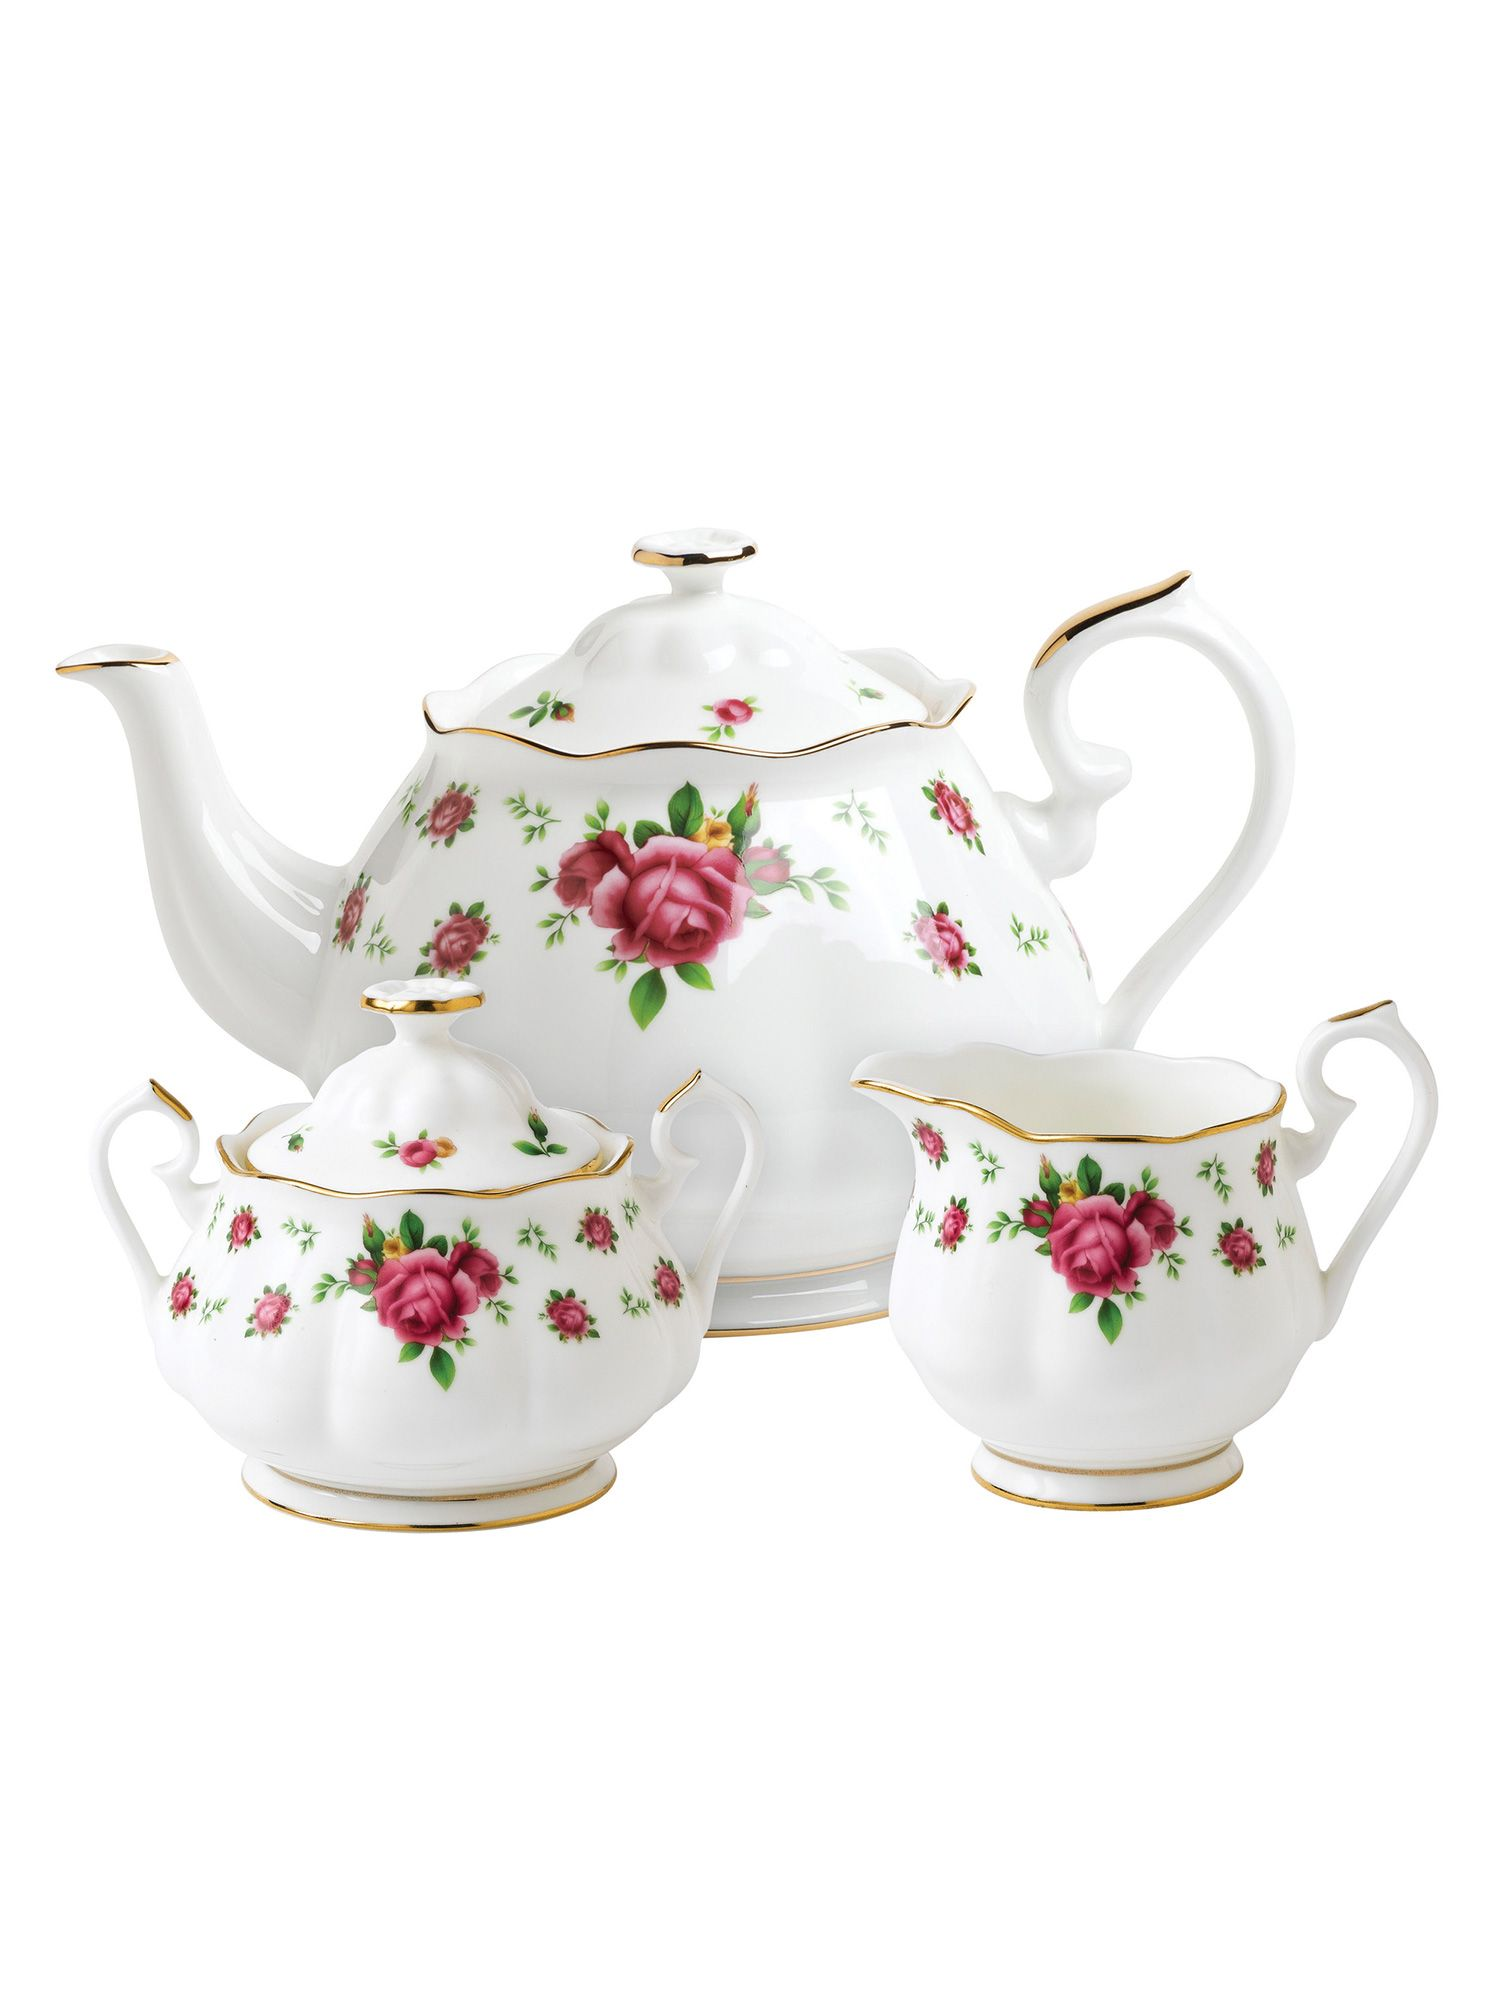 Buy Cheap China Tea Bowl Compare Crockery Prices For